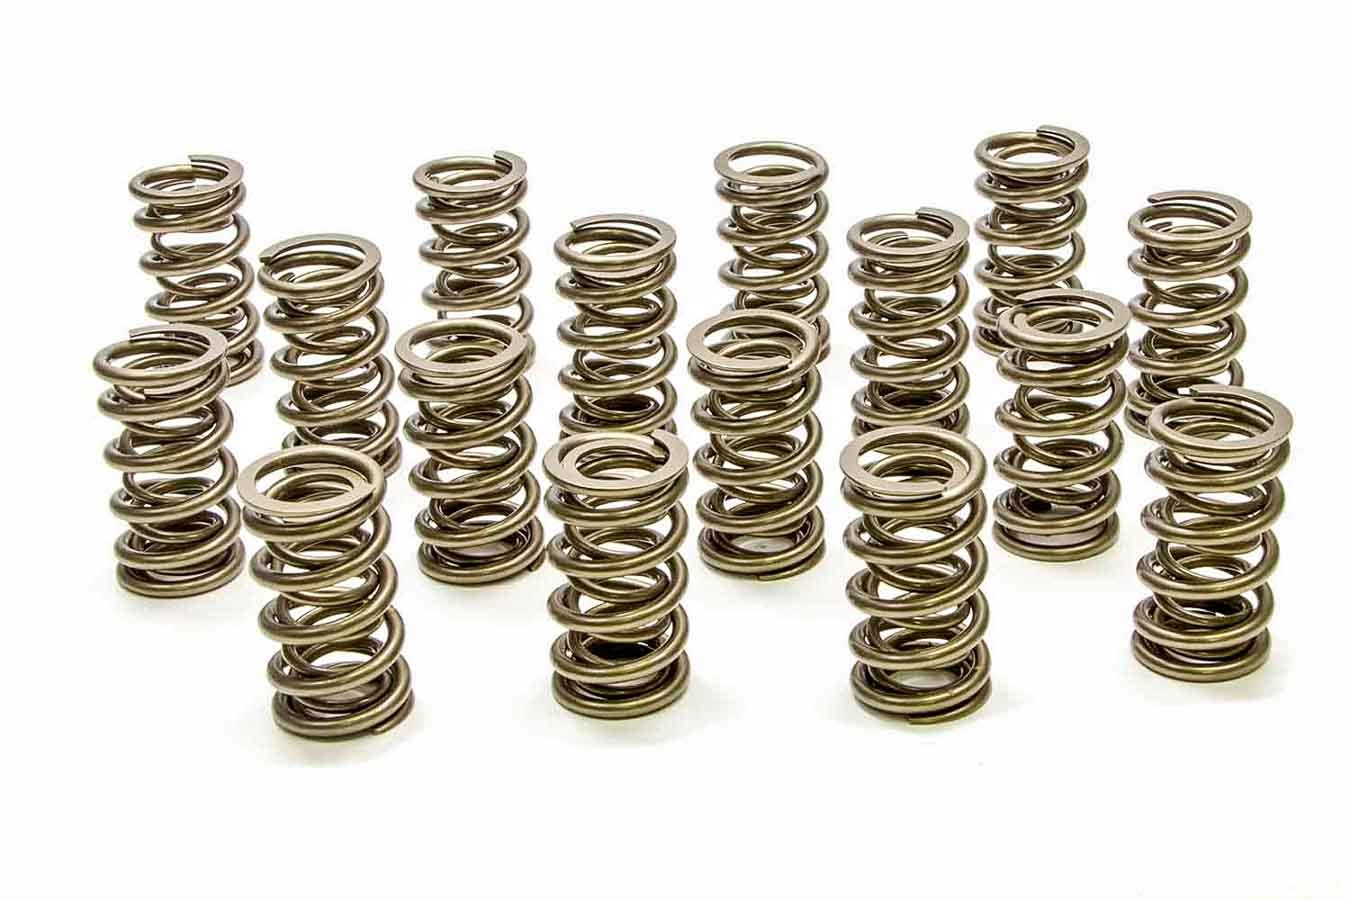 PAC Racing Springs PAC-1207X Valve Spring, RPM Series, Dual Spring, 433 lb/in Spring Rate, 1.000 in Coil Bind, 1.304 in OD, GM LS-Series, Set of 16